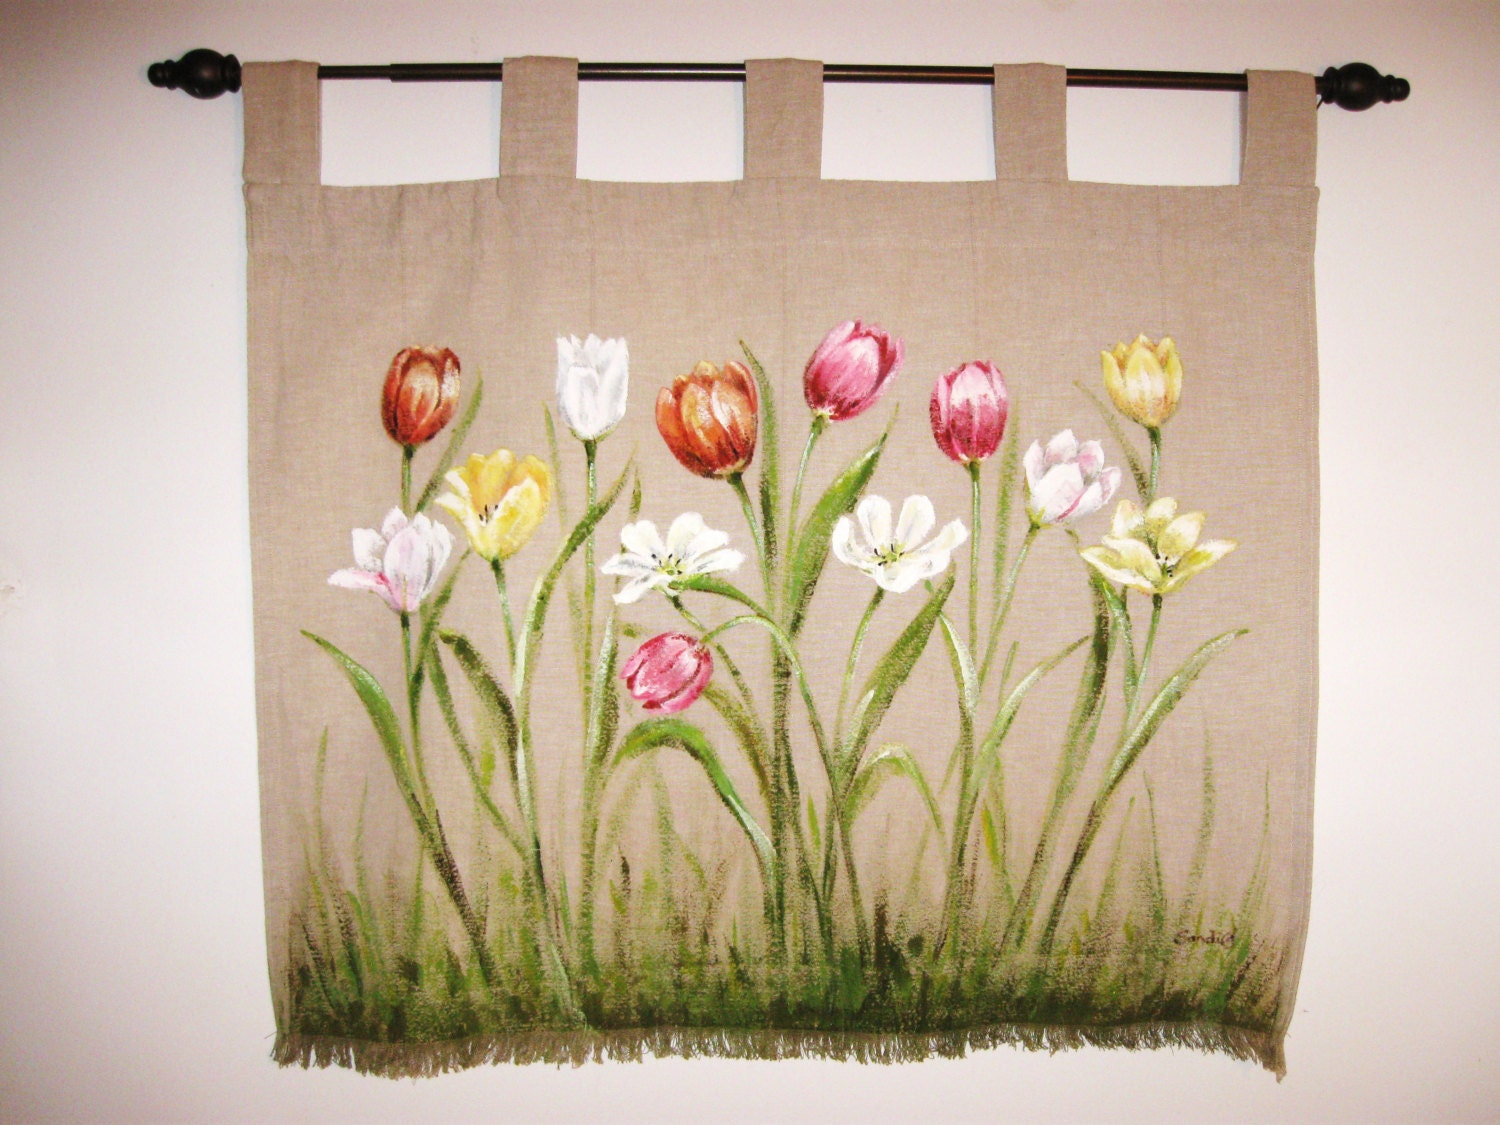 Tulips Spring Floral Wall Hanging Hand Painted Fiber Wall